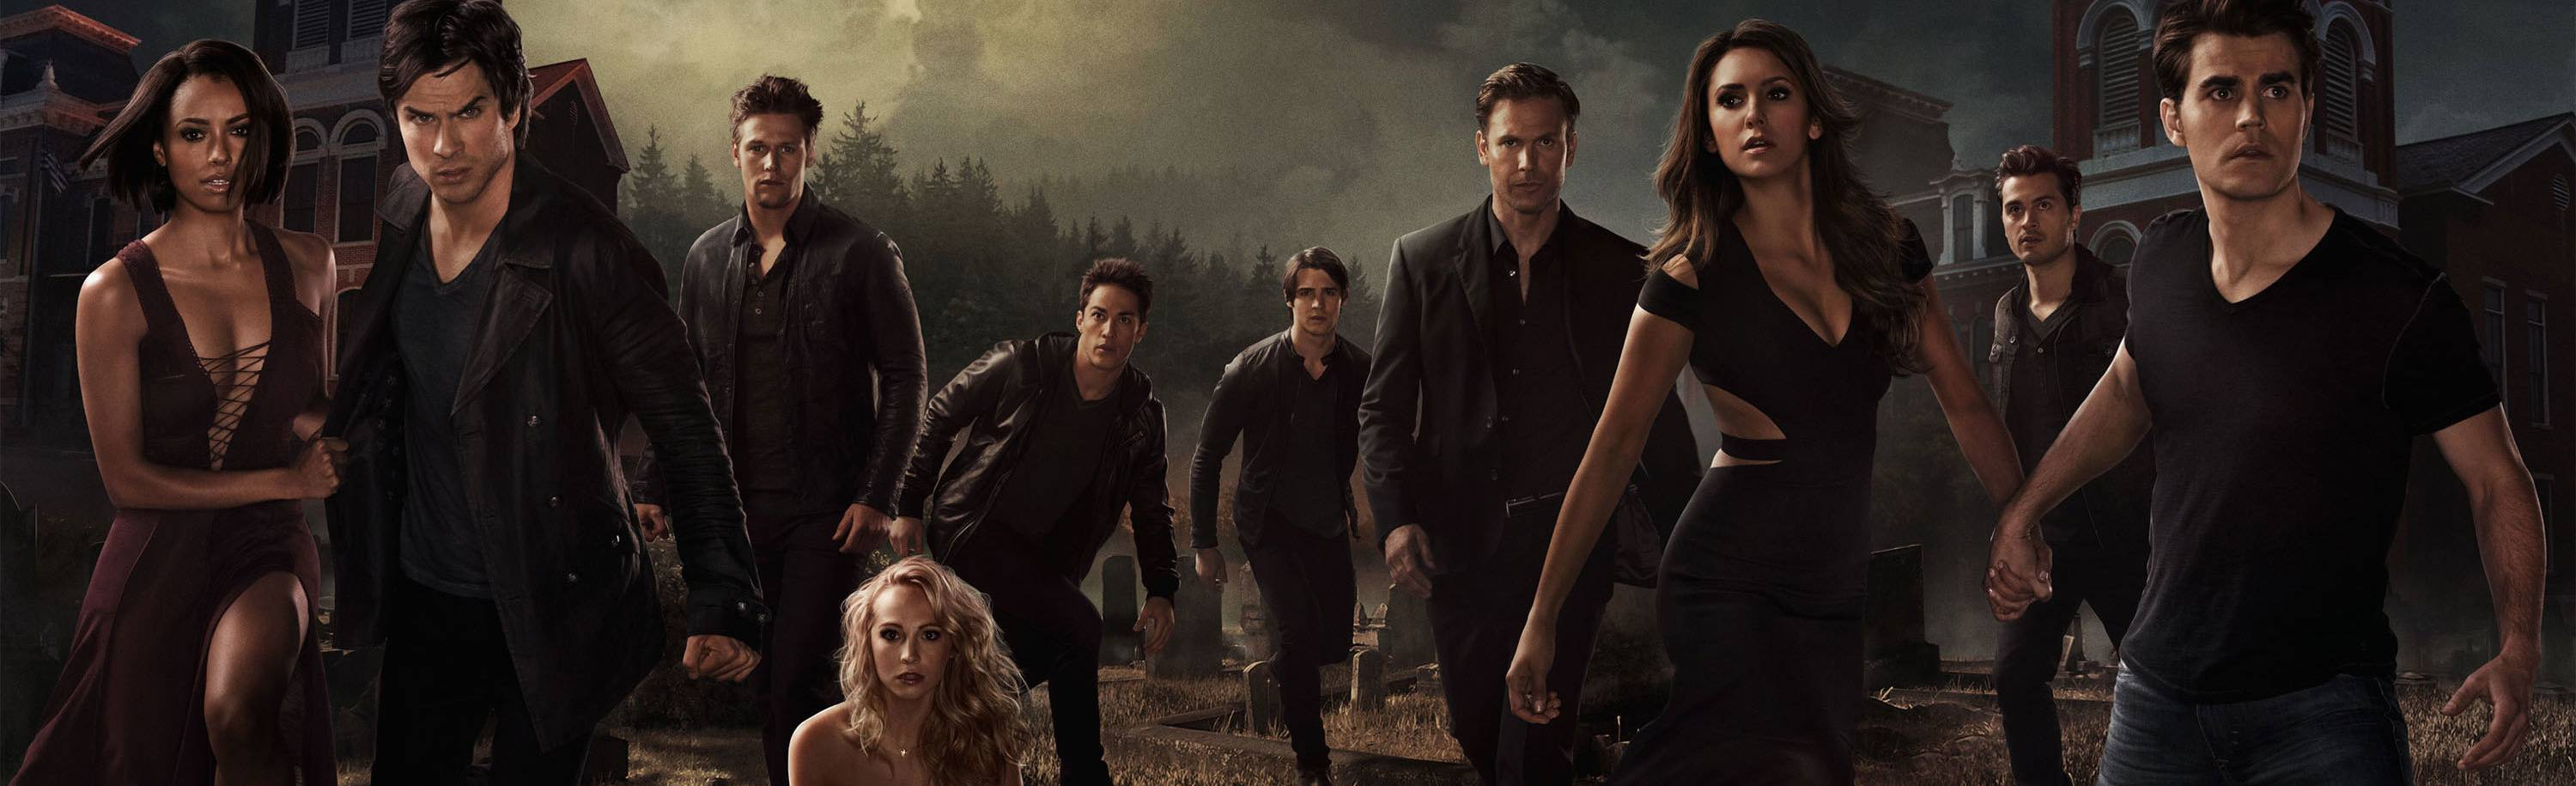 The Vampire Diaries Season 4 / Дневниците на Вампира Сезон 4 (2012)